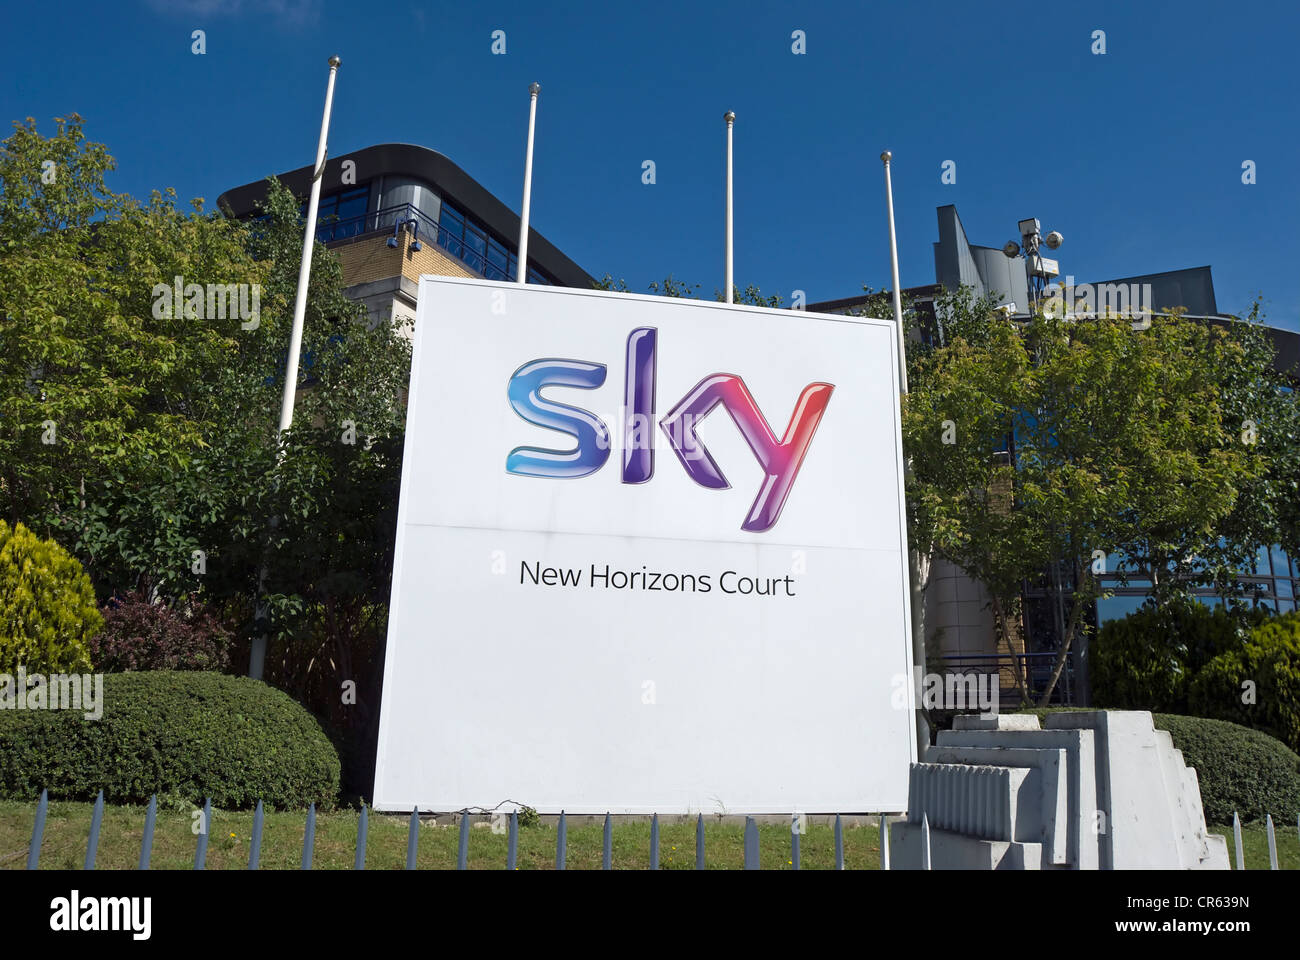 new horizons court, pictured when still part of the headquarters of sky tv, isleworth, west london, england - Stock Image